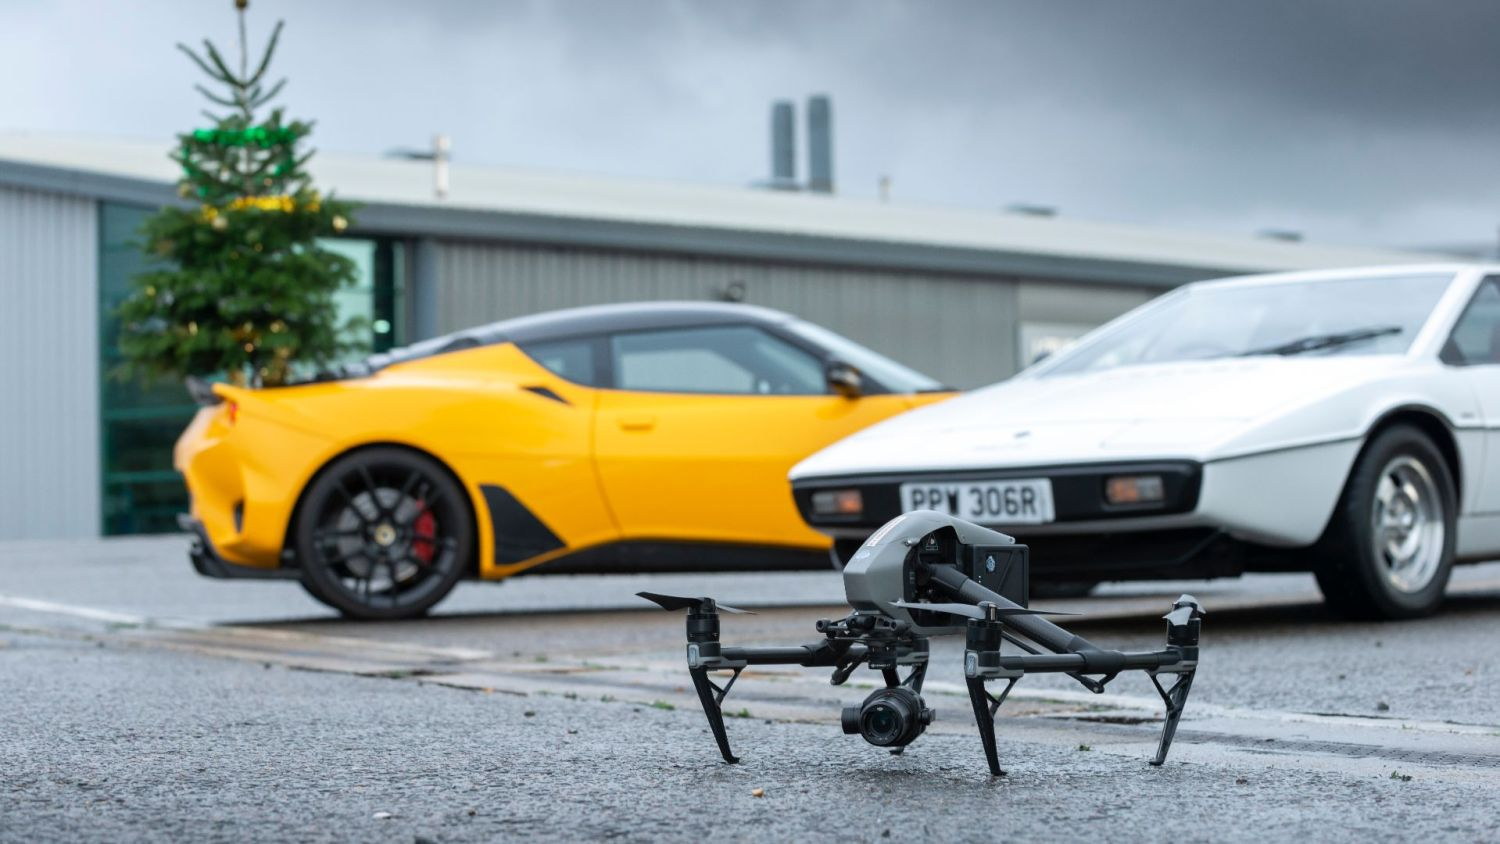 #MerryDriftmas video included some exciting Lotus Cars cameos including a familiar Lotus Esprit